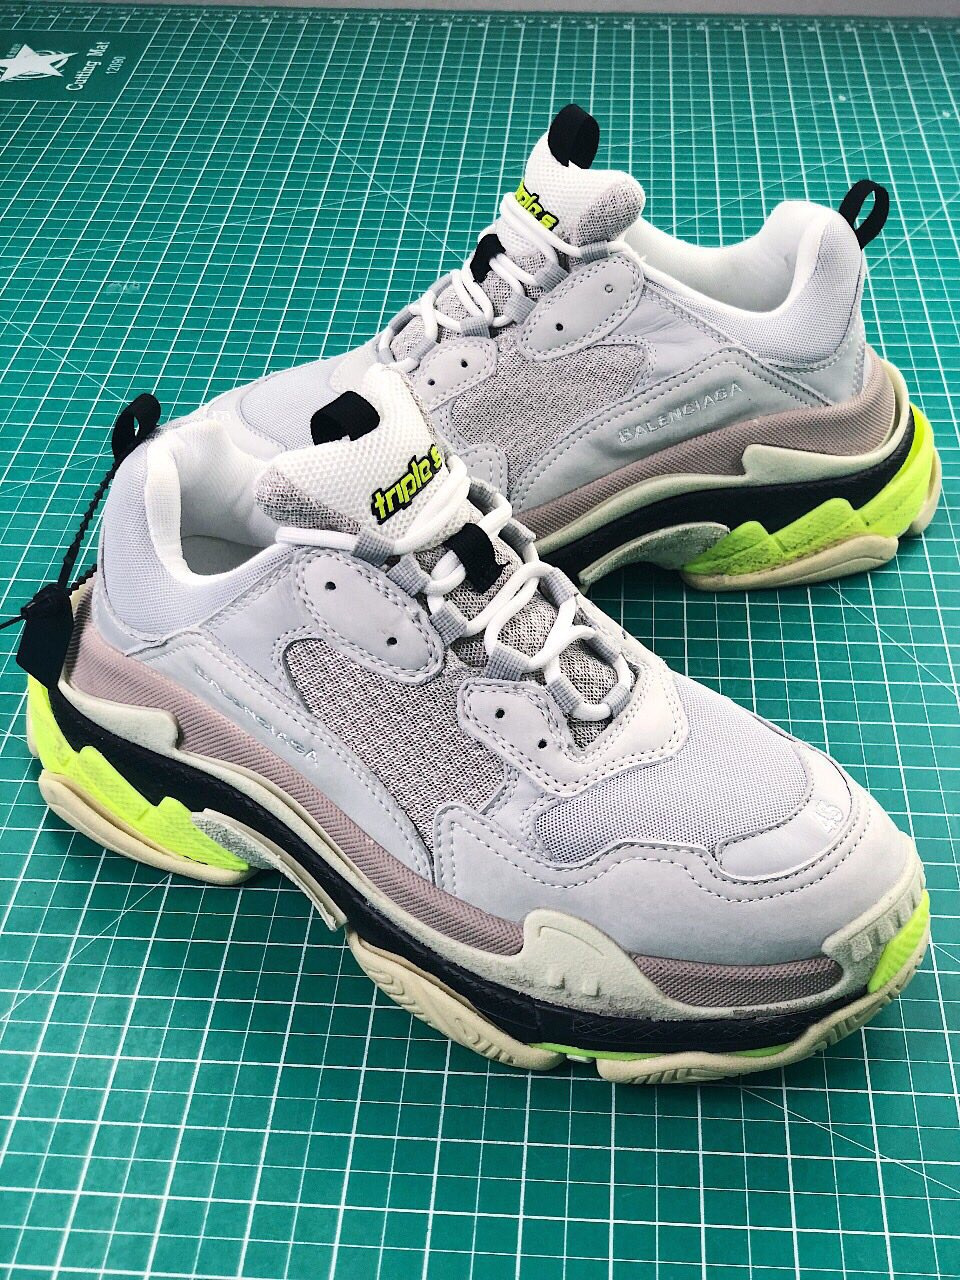 Unboxing Review Balenciaga triple S silver Repyes YouTube